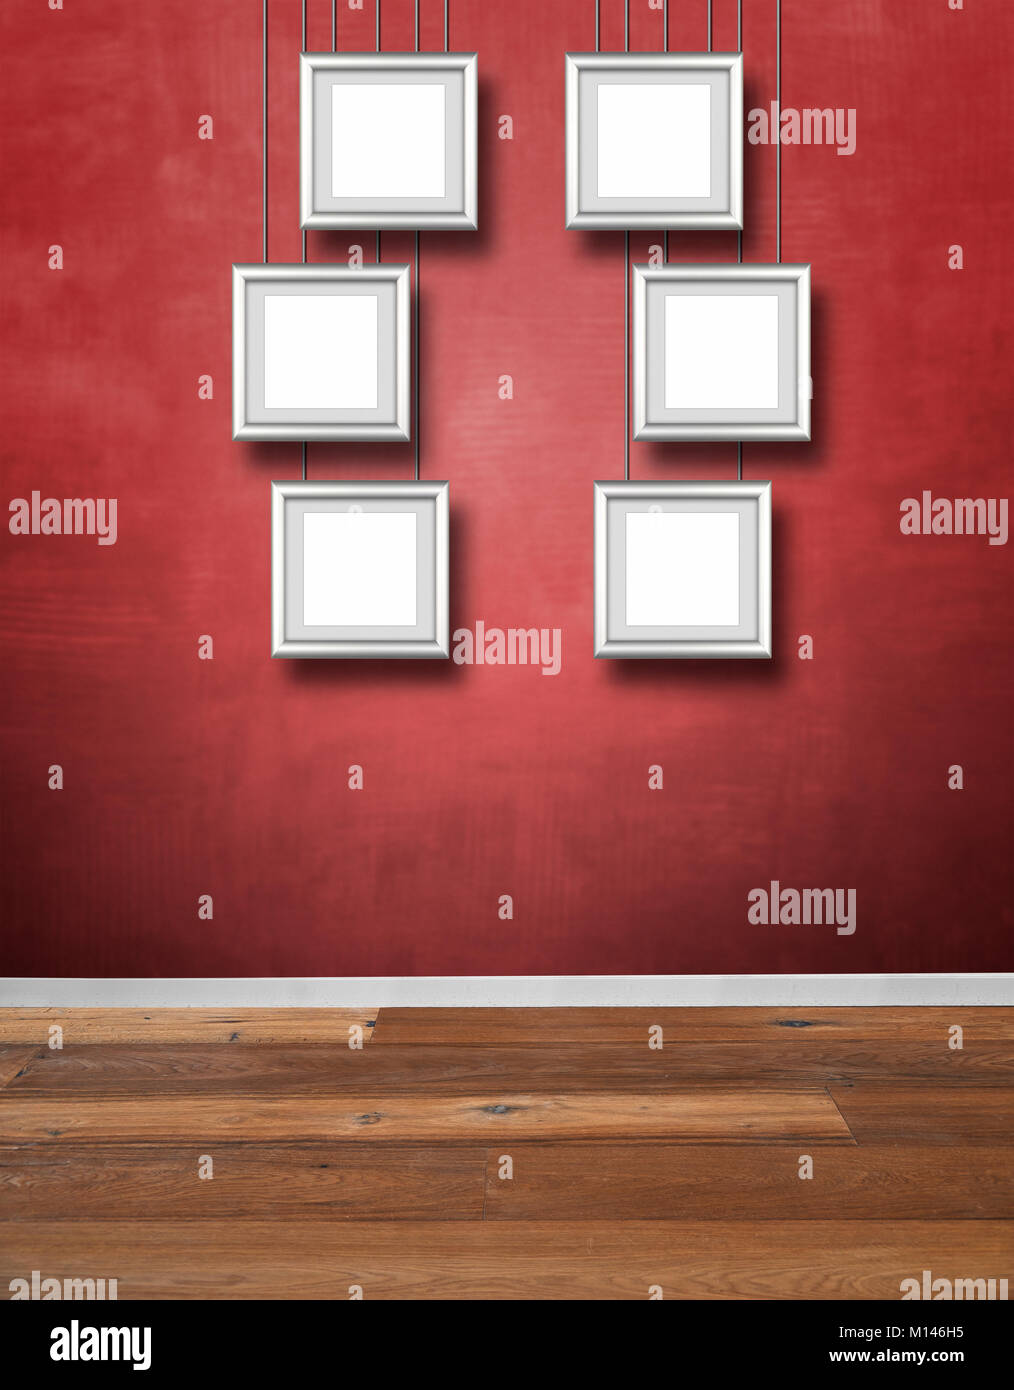 Red textured wall and Alu frames hanging - Stock Image